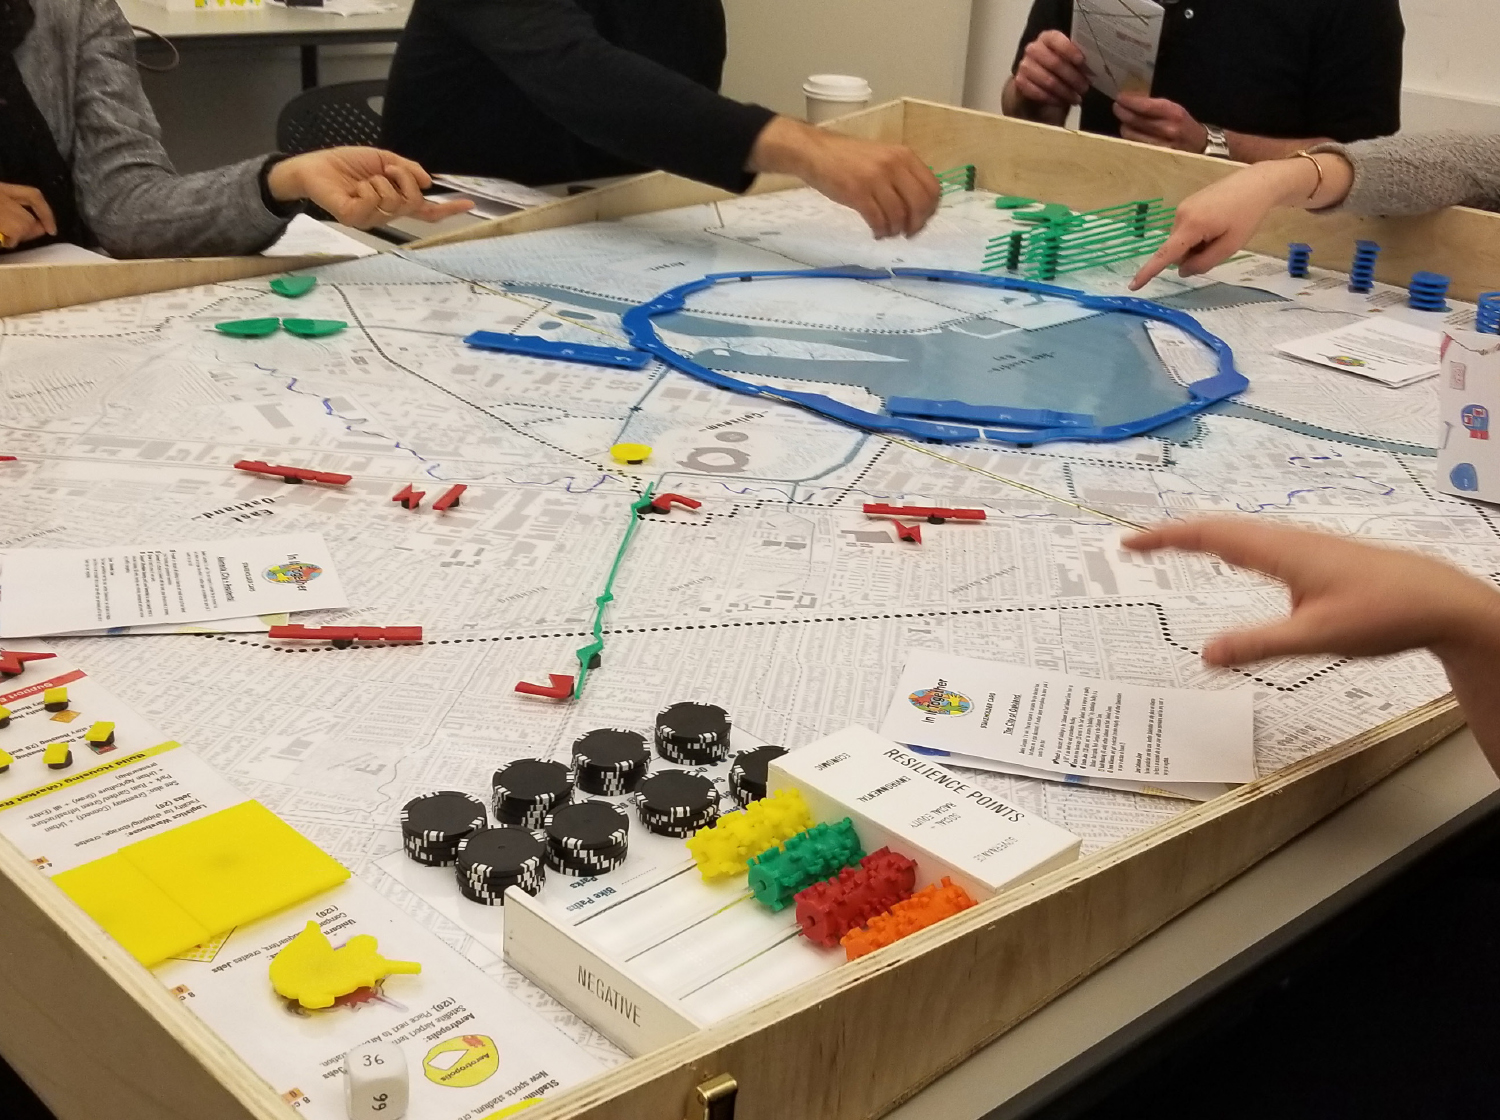 The Final In It Together game, played by Project Working Group members, student groups, at the BART Coliseum station, and many other events. Image: The All Bay Collective/Janette Kim.